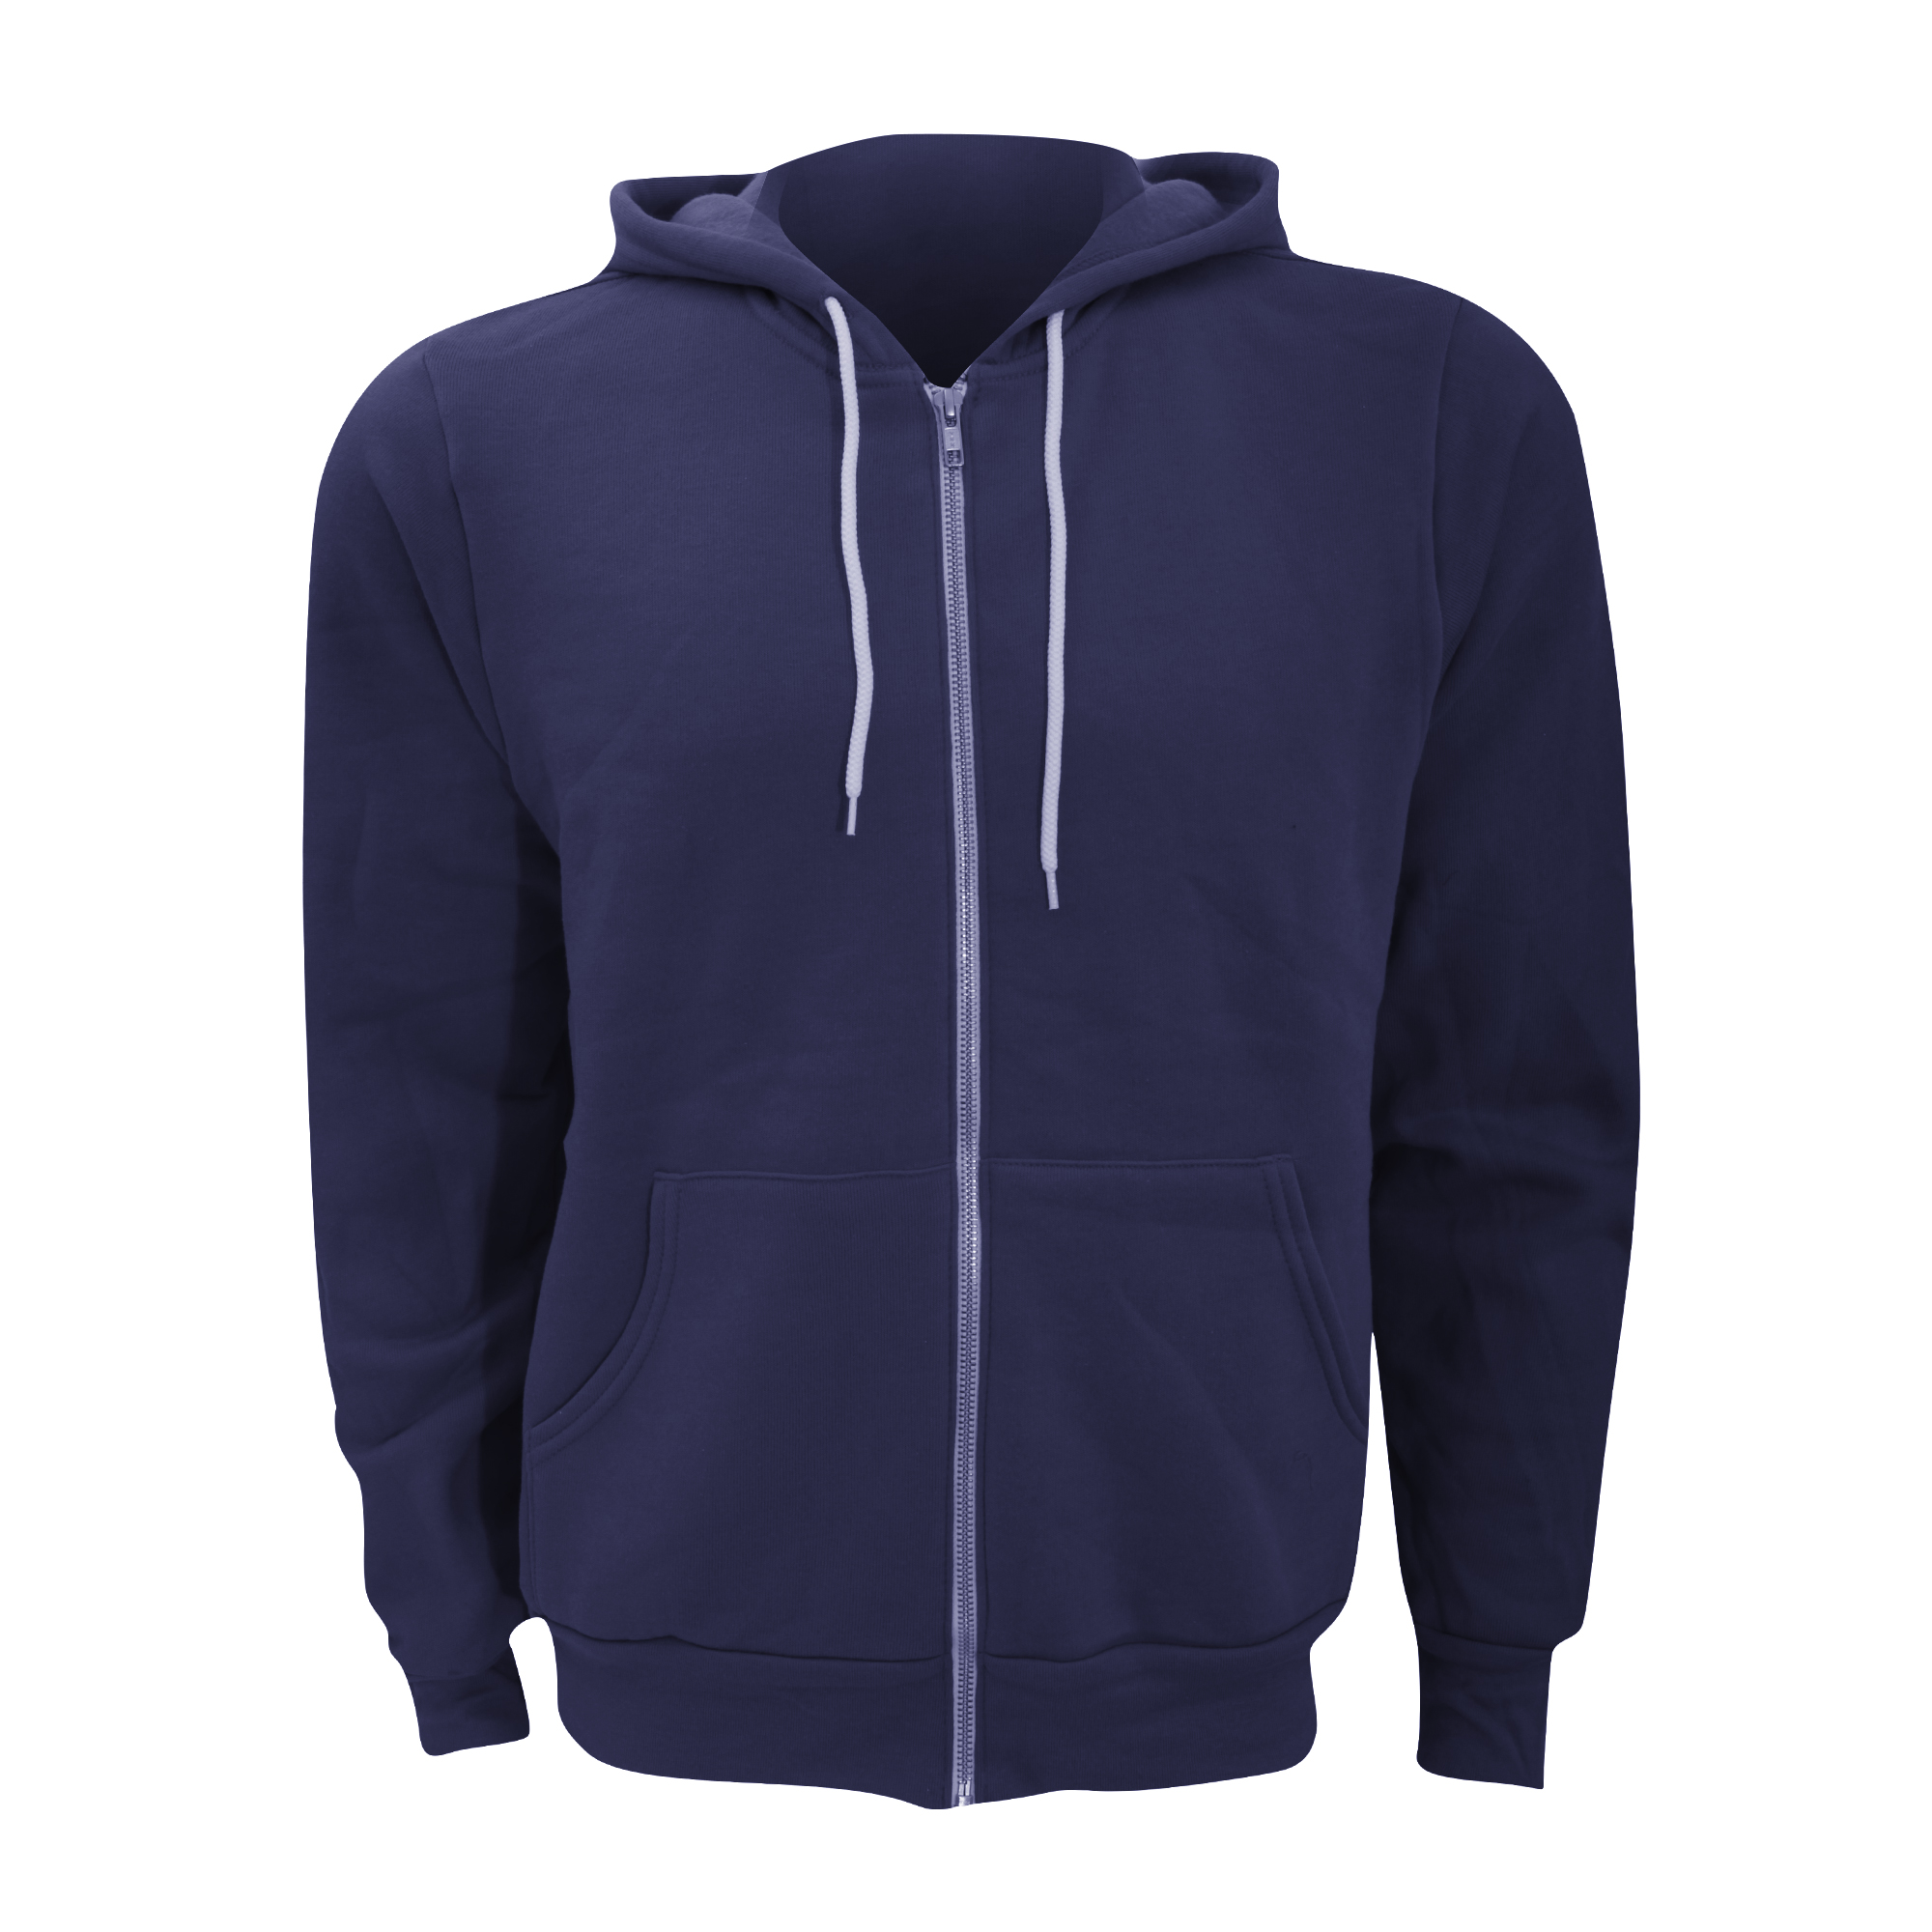 Zip Up Hoodies. Watch out for serious hoodie love ahead. From boucle to sherpa to nylon and fleece, our hoodies are always made out of the softest and most comfortable fabrics possible.